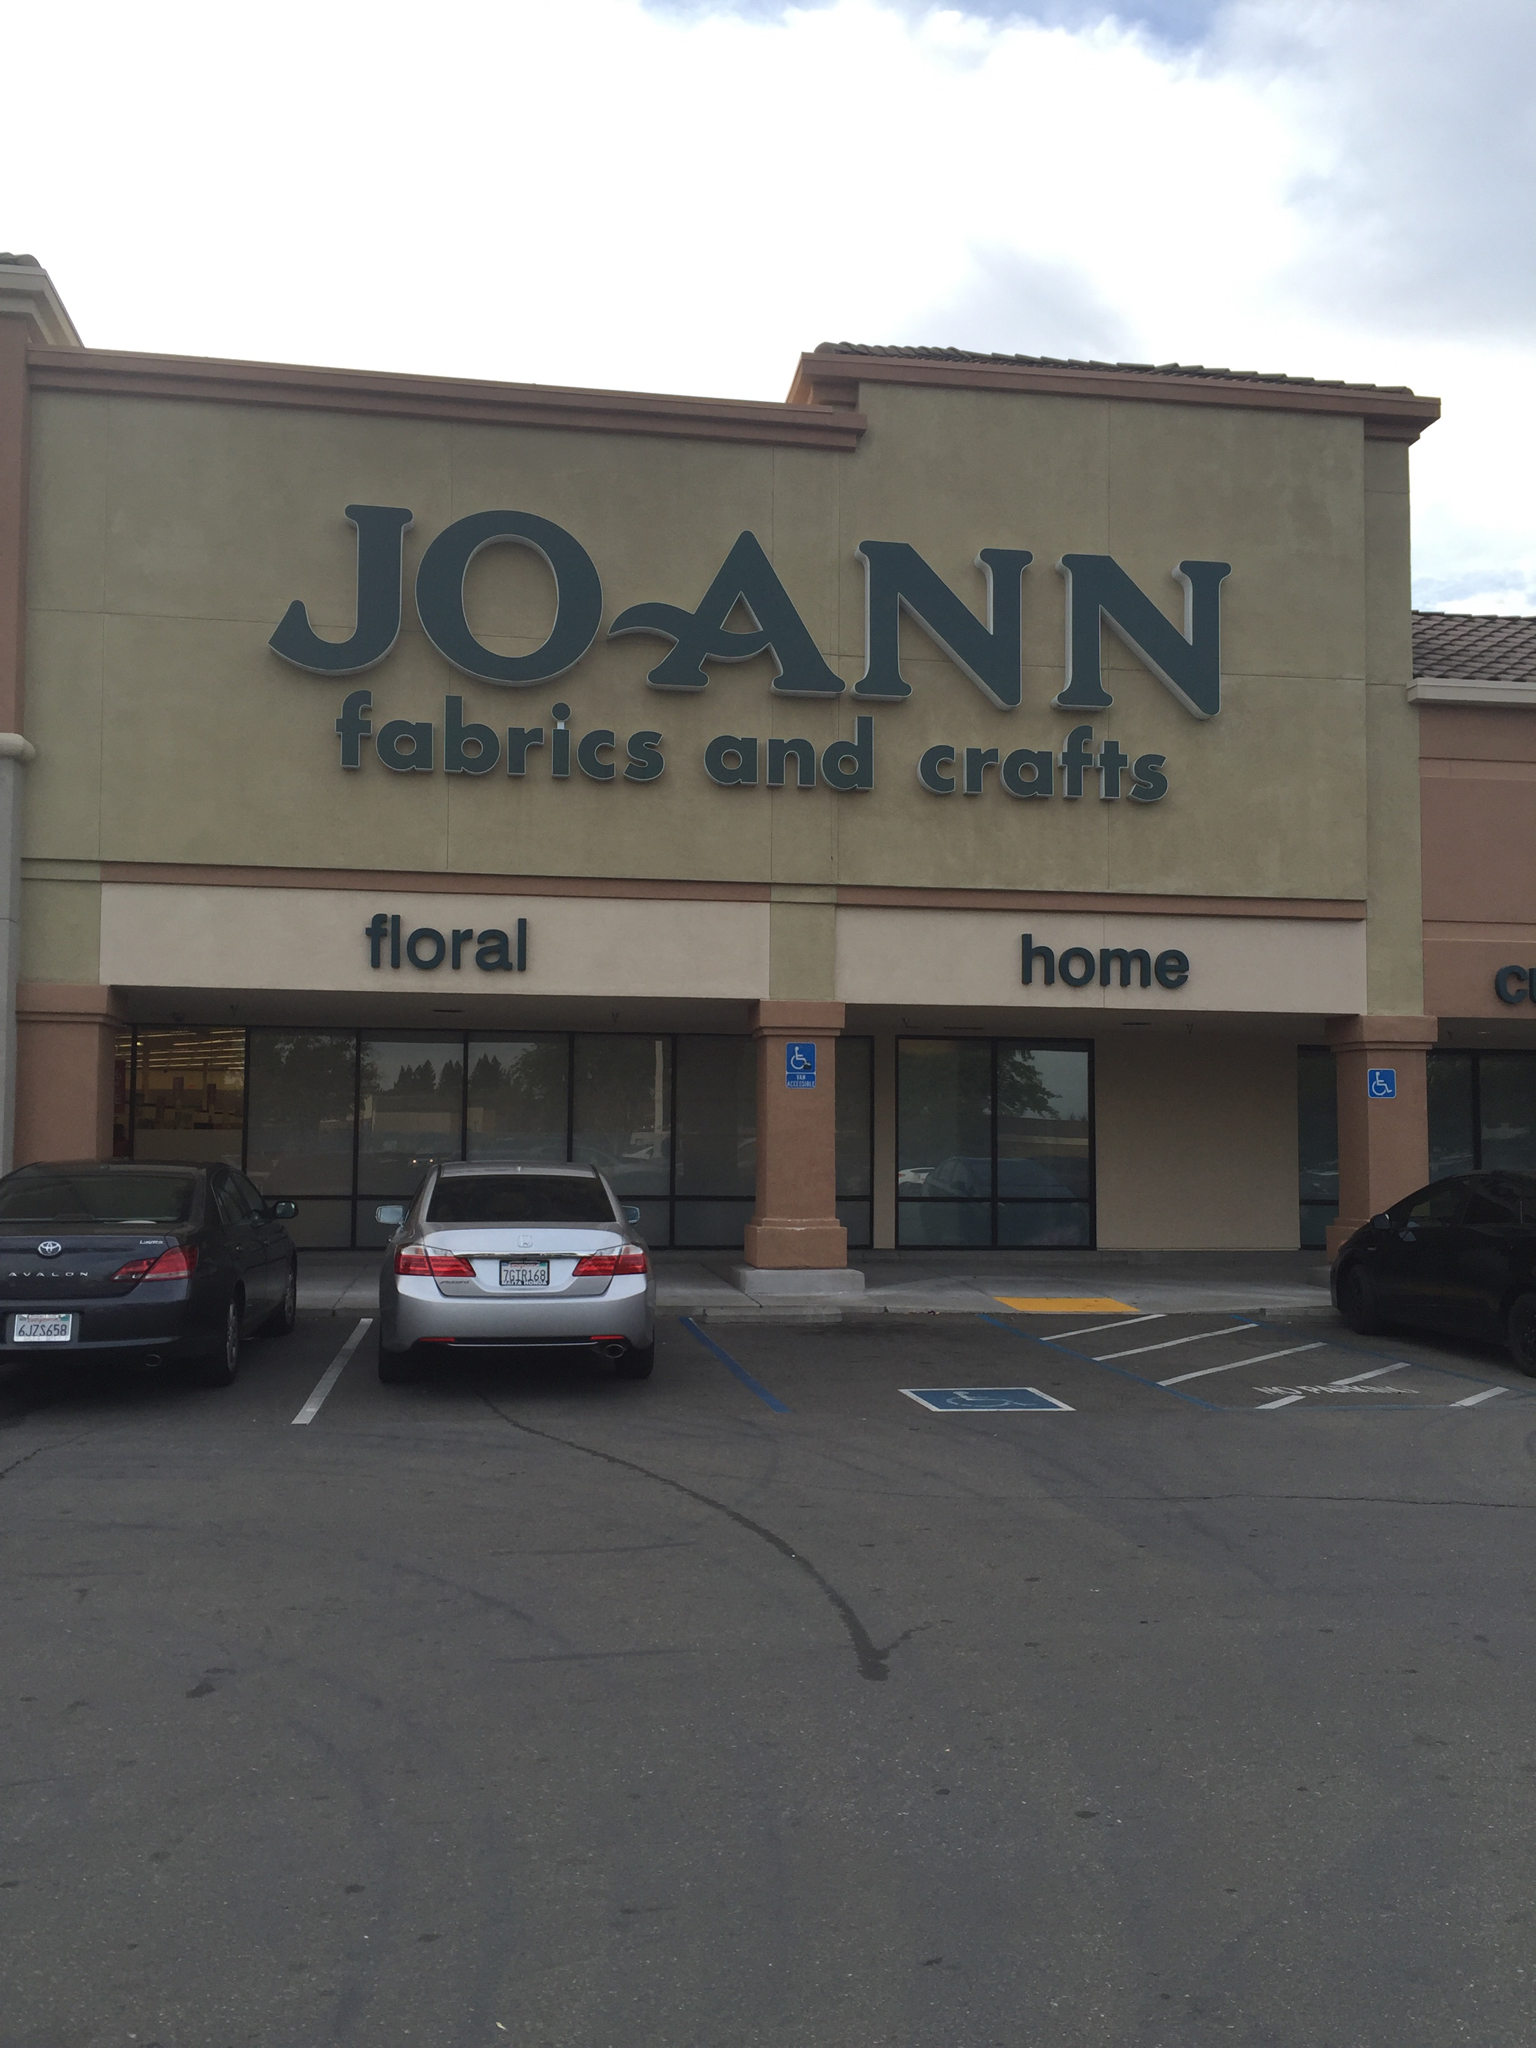 Jo ann fabric and craft stores 5425 sunrise blvd citrus heights ca jo ann fabric and craft stores 5425 sunrise blvd citrus heights ca 95610 yp gumiabroncs Image collections